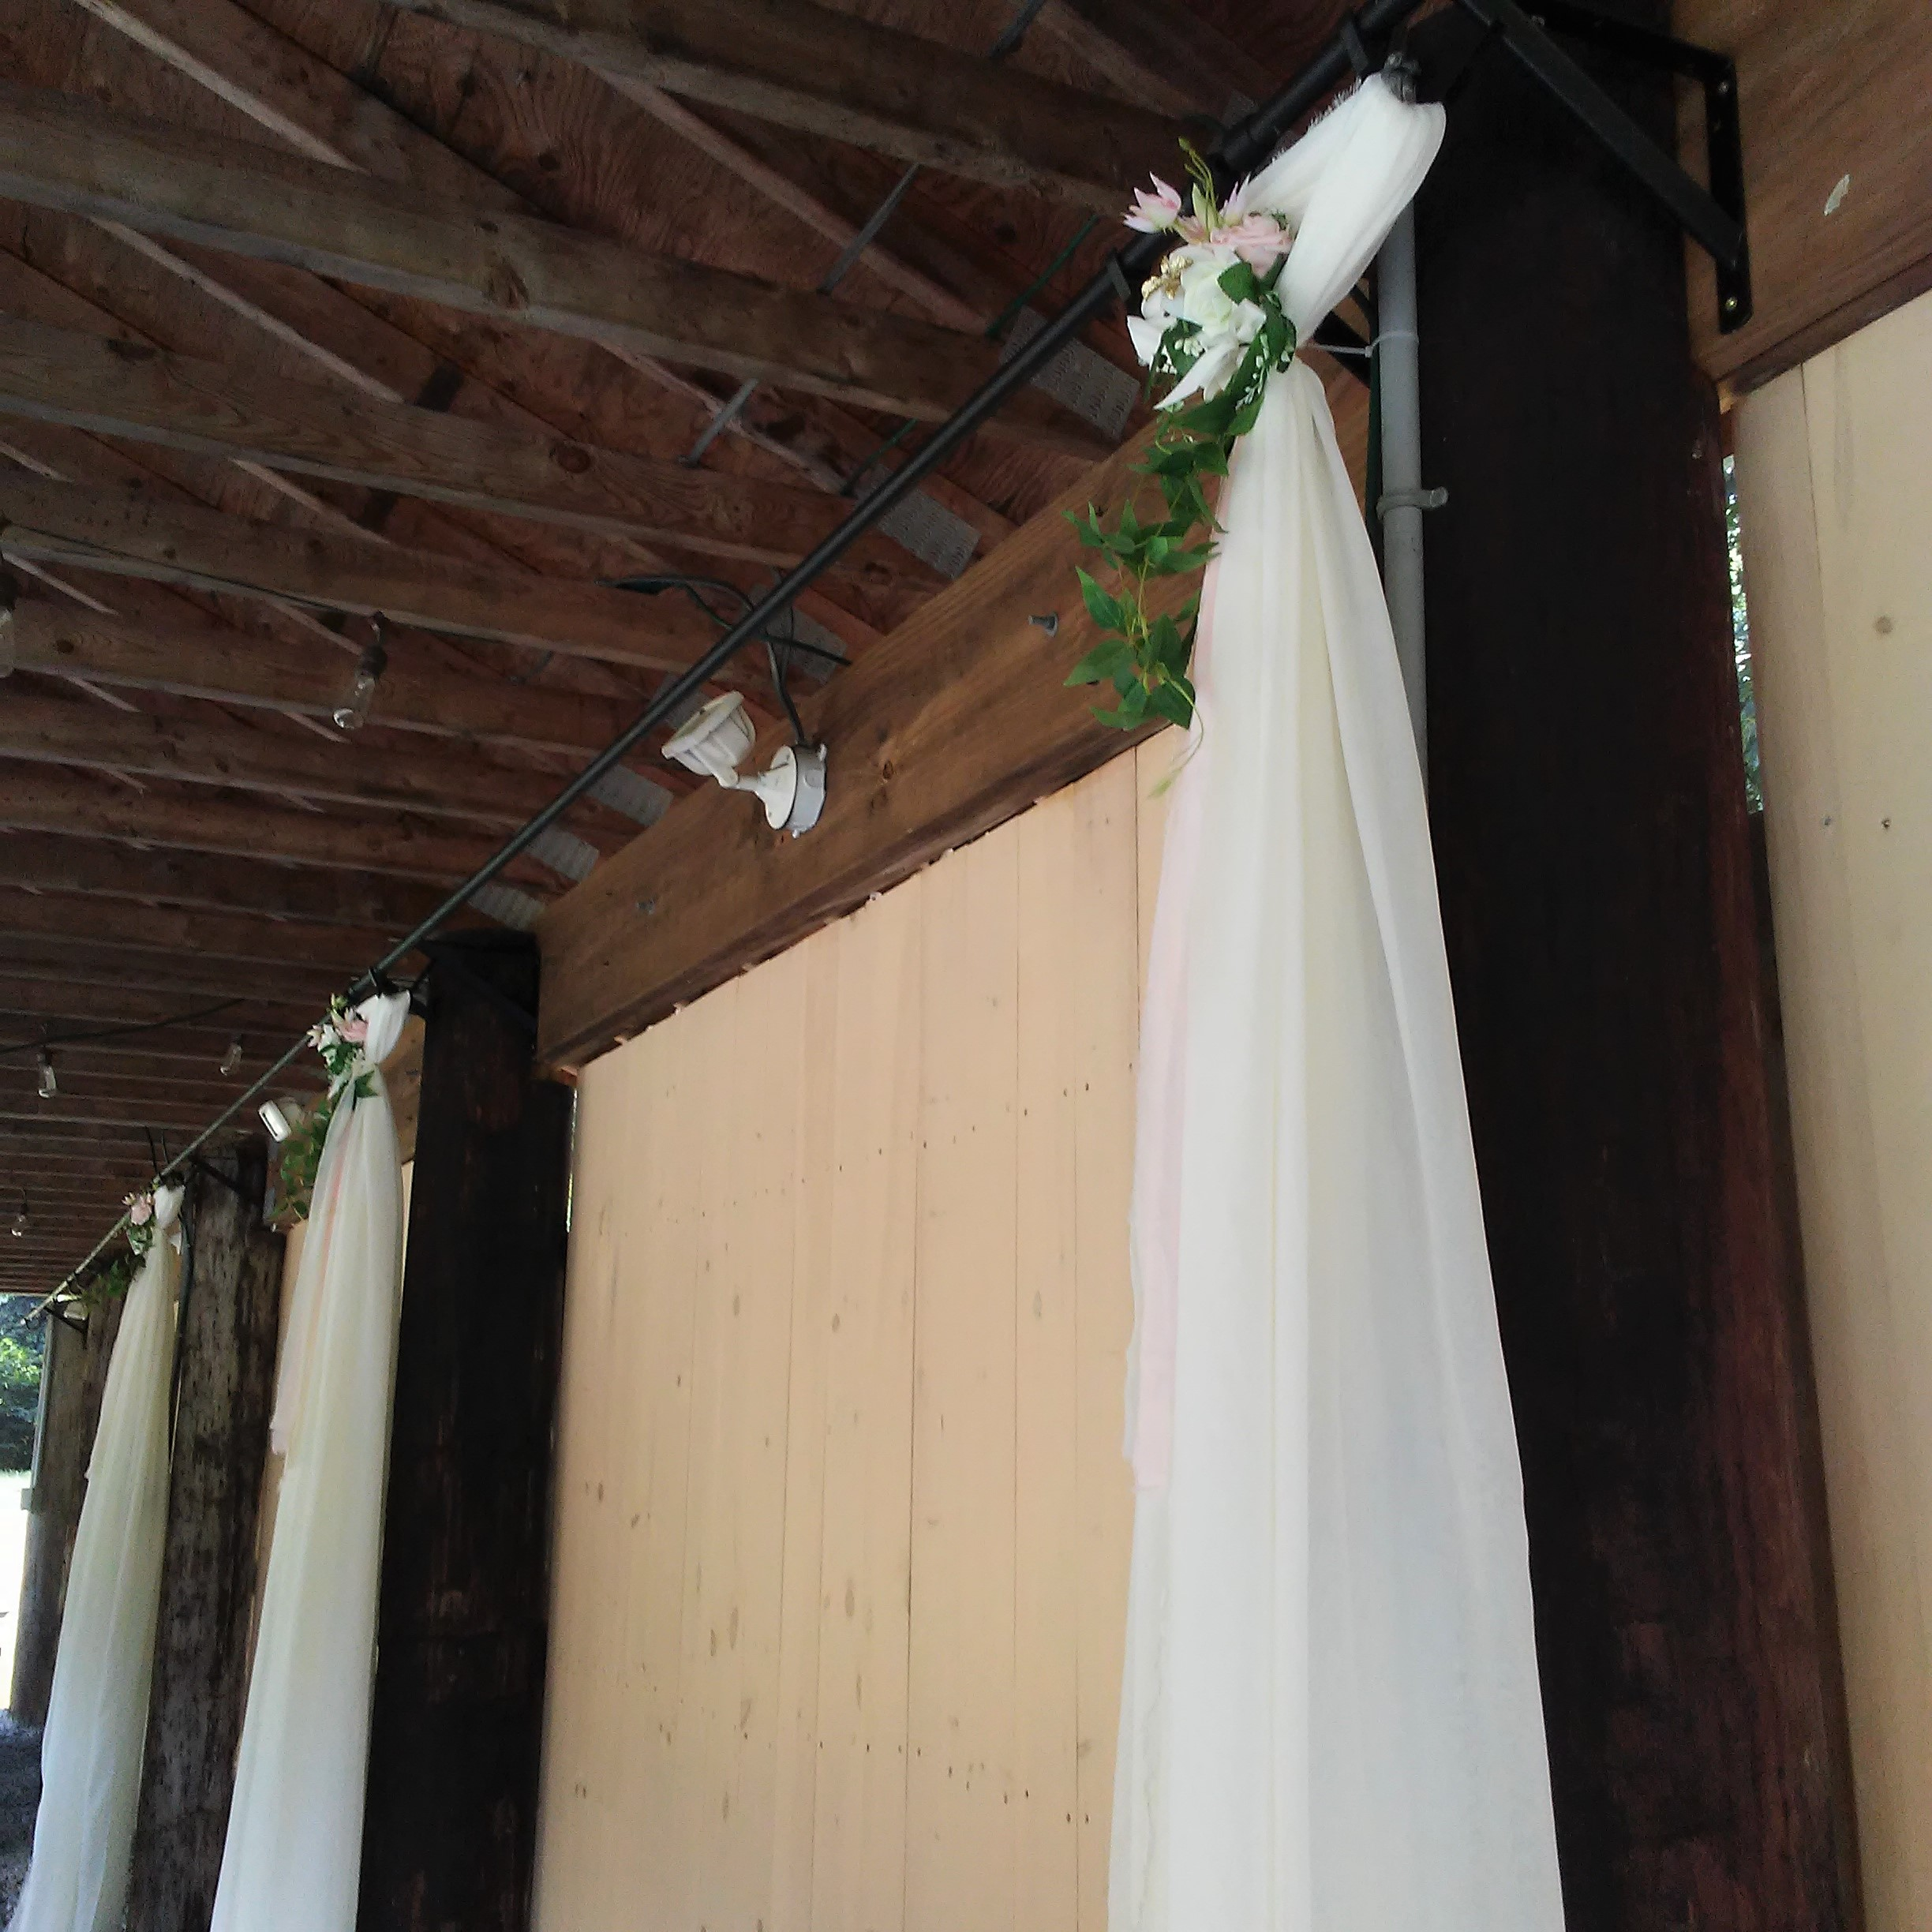 Decor ideas for the pavilion at The 228